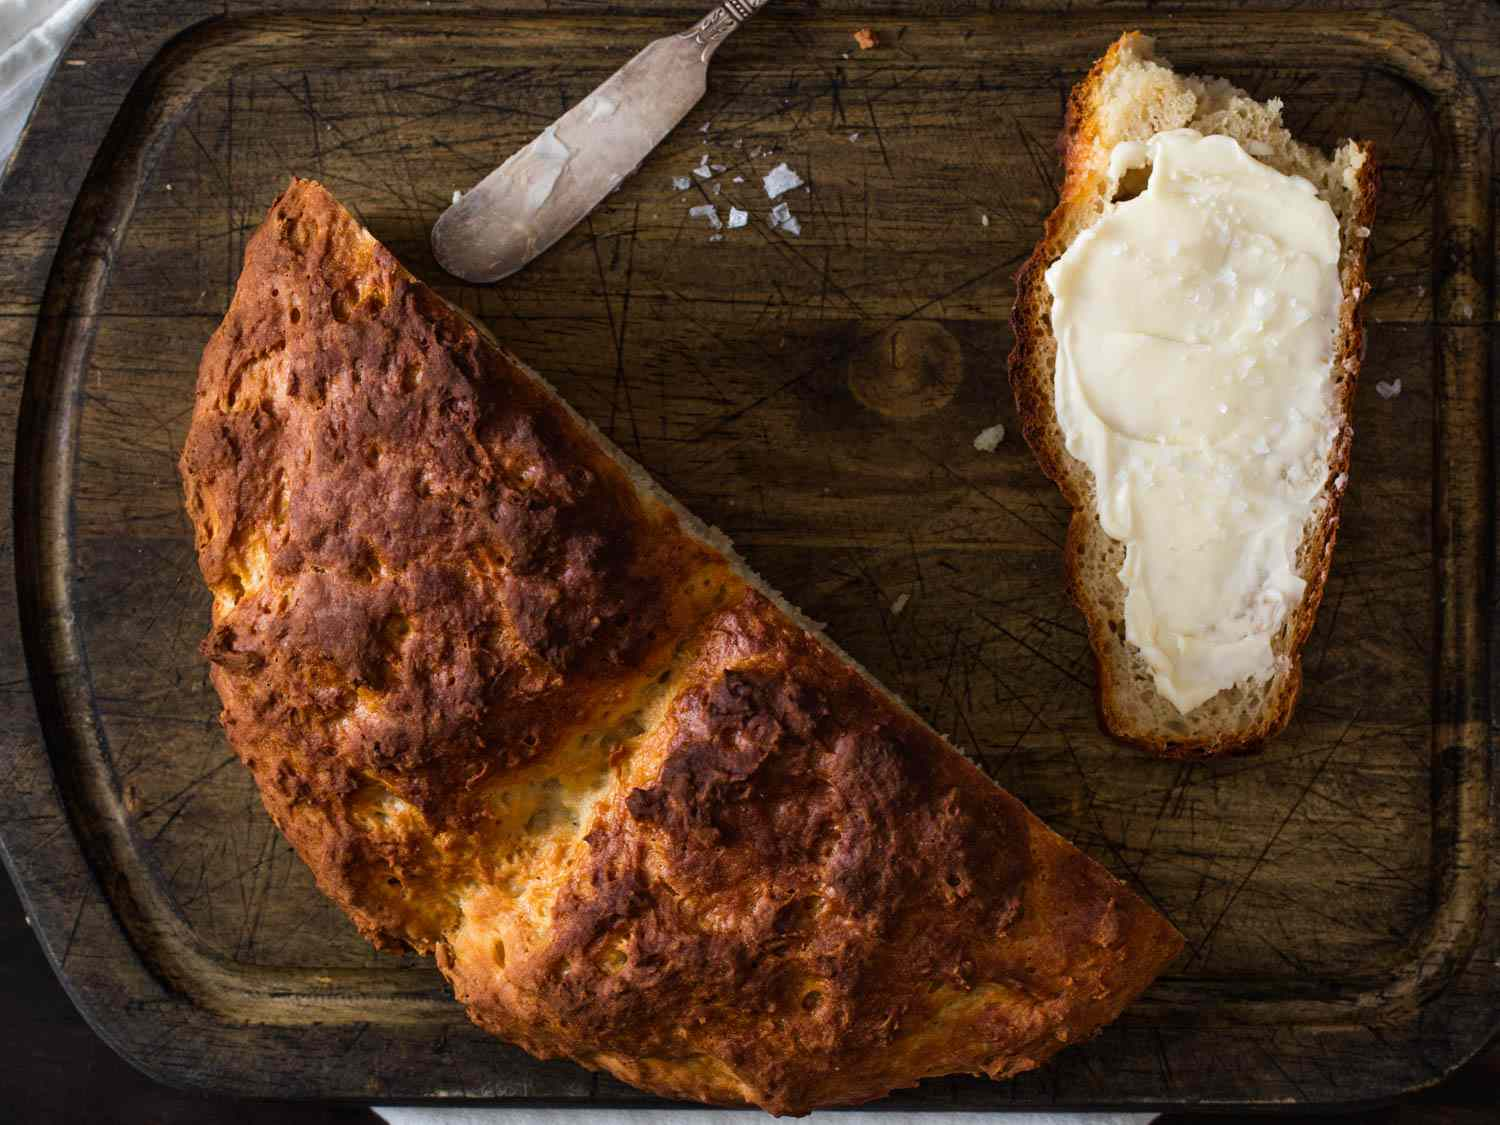 A half loaf of Irish soda bread with a buttered slice next to it on a dark wood cutting board.